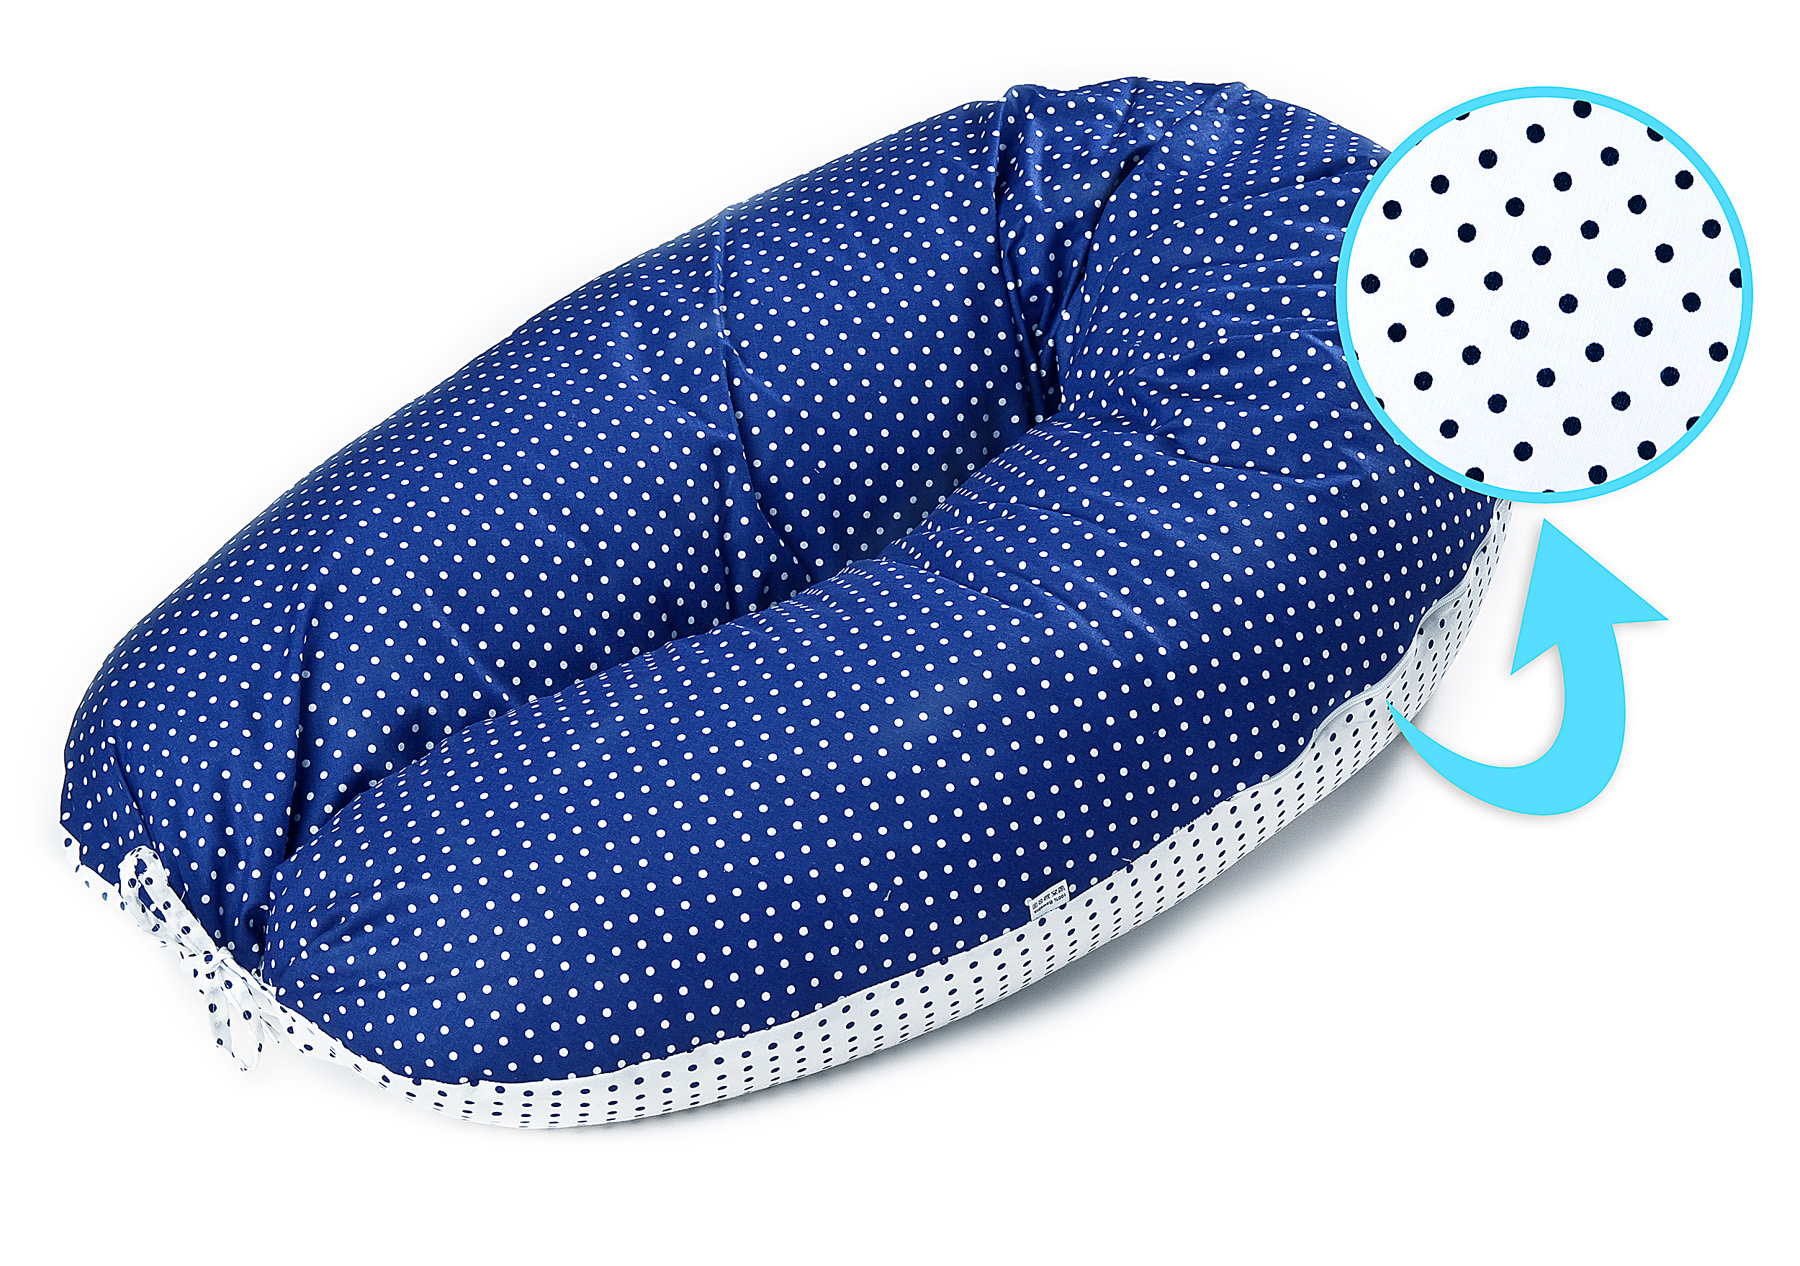 XL Pregnancy Pillow peas navy blue